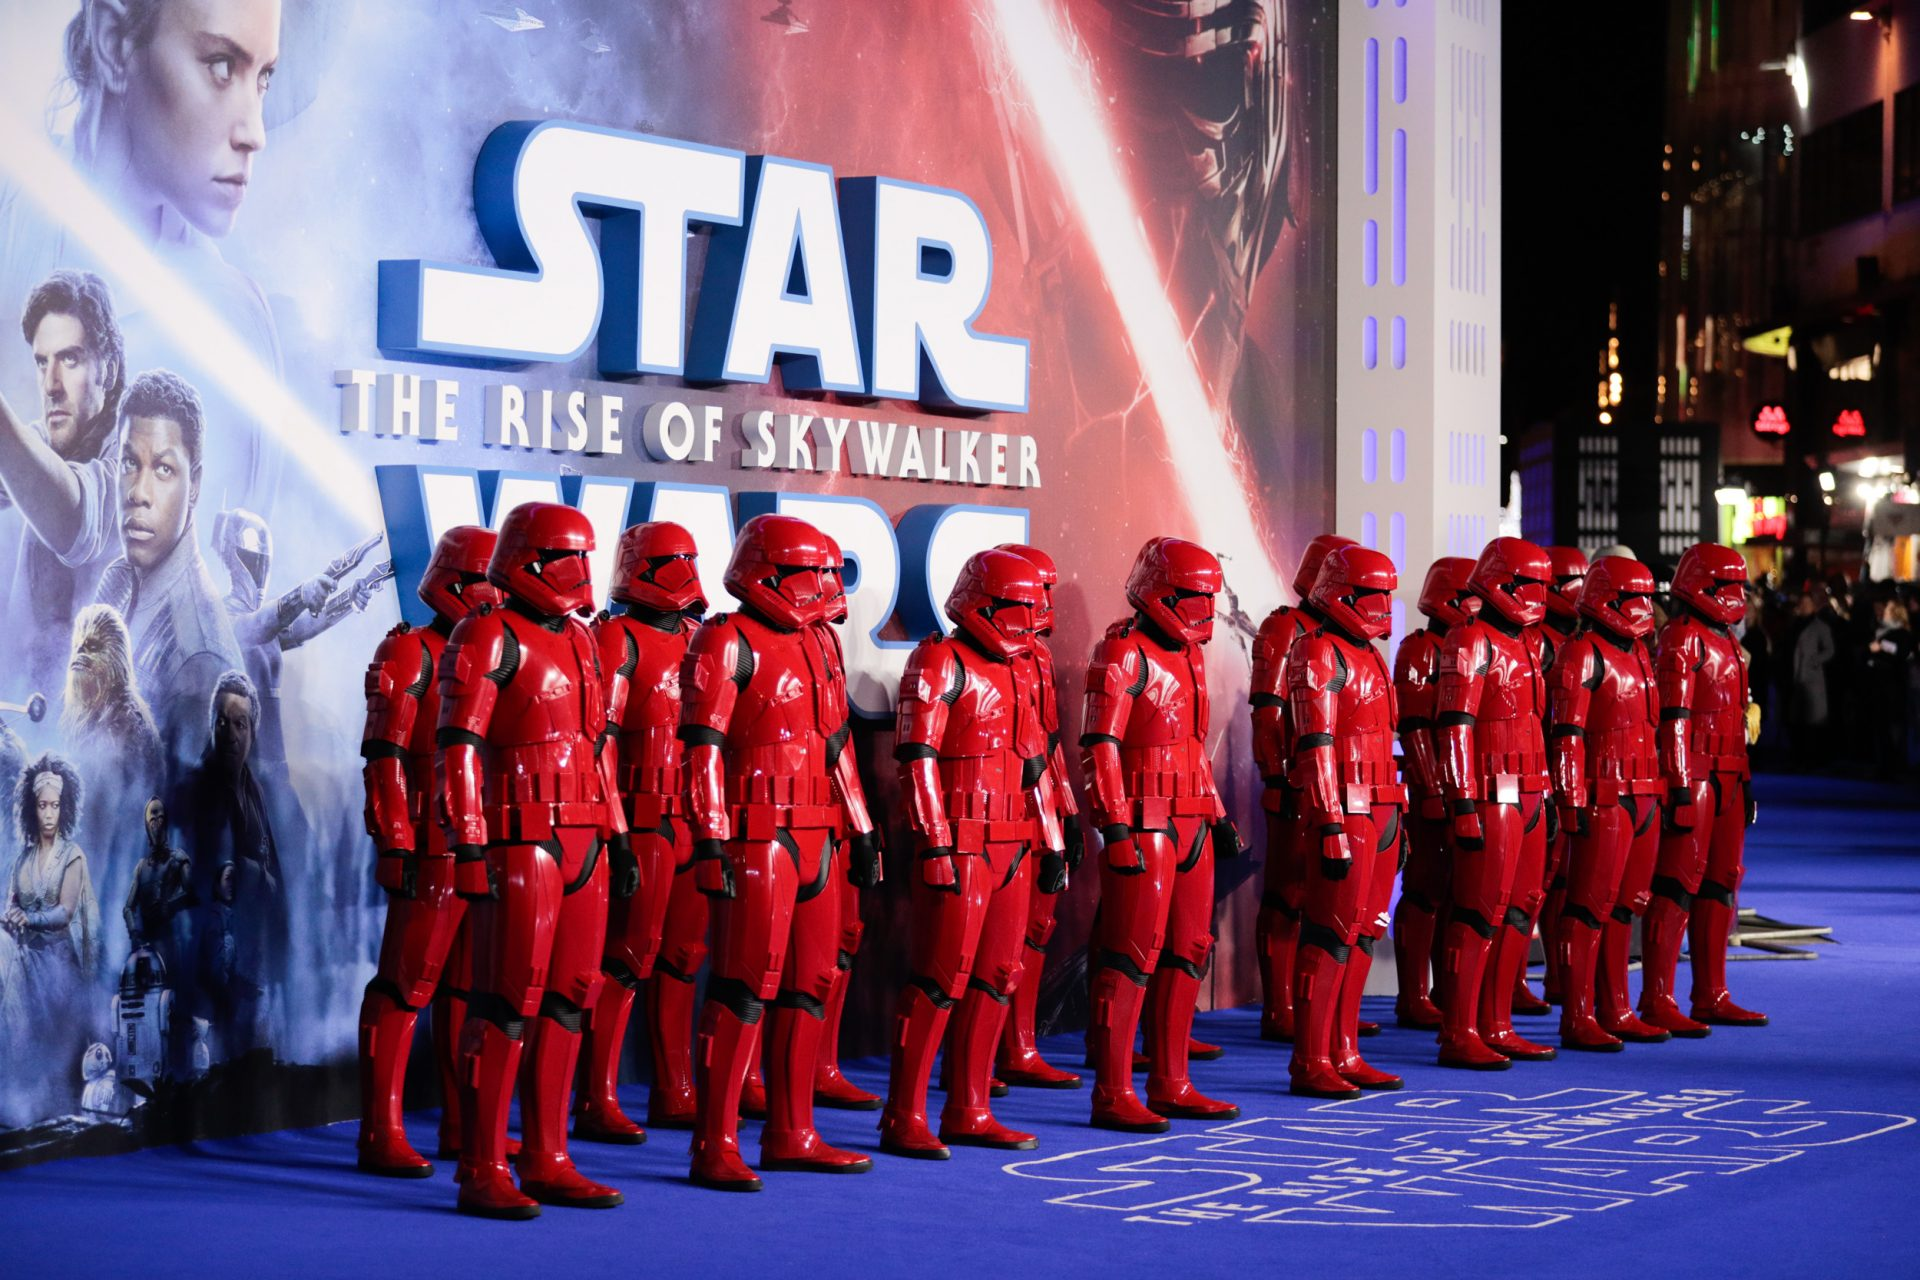 Stormtroopers in red uniforms lined up against Star Wars: The Rise of Skywalker poster